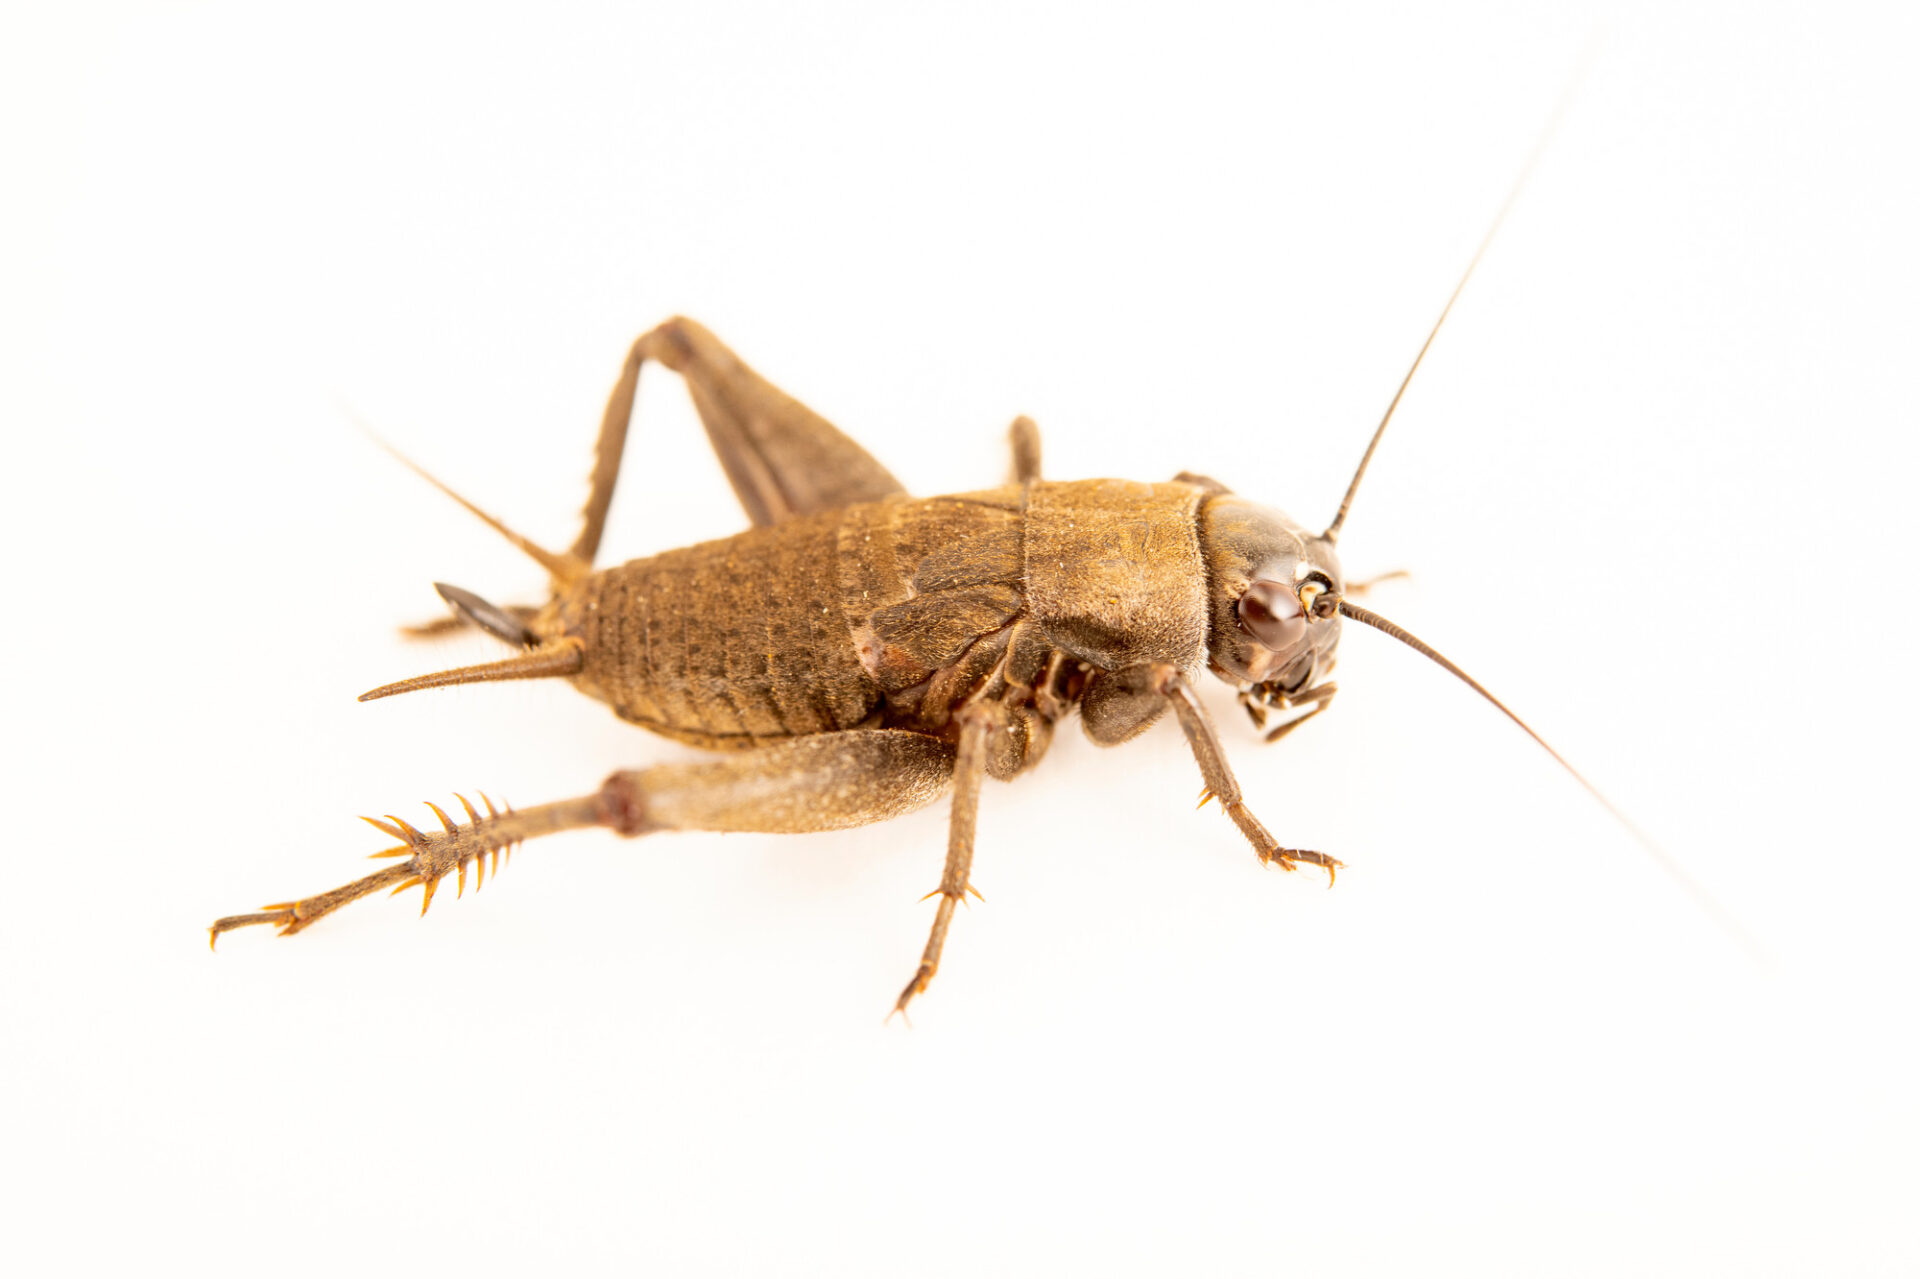 Photo: An unidentified cricket species (Grillidea family) at the Museo d'Orbigny Natural History Museum in Cochabamba, Bolivia.